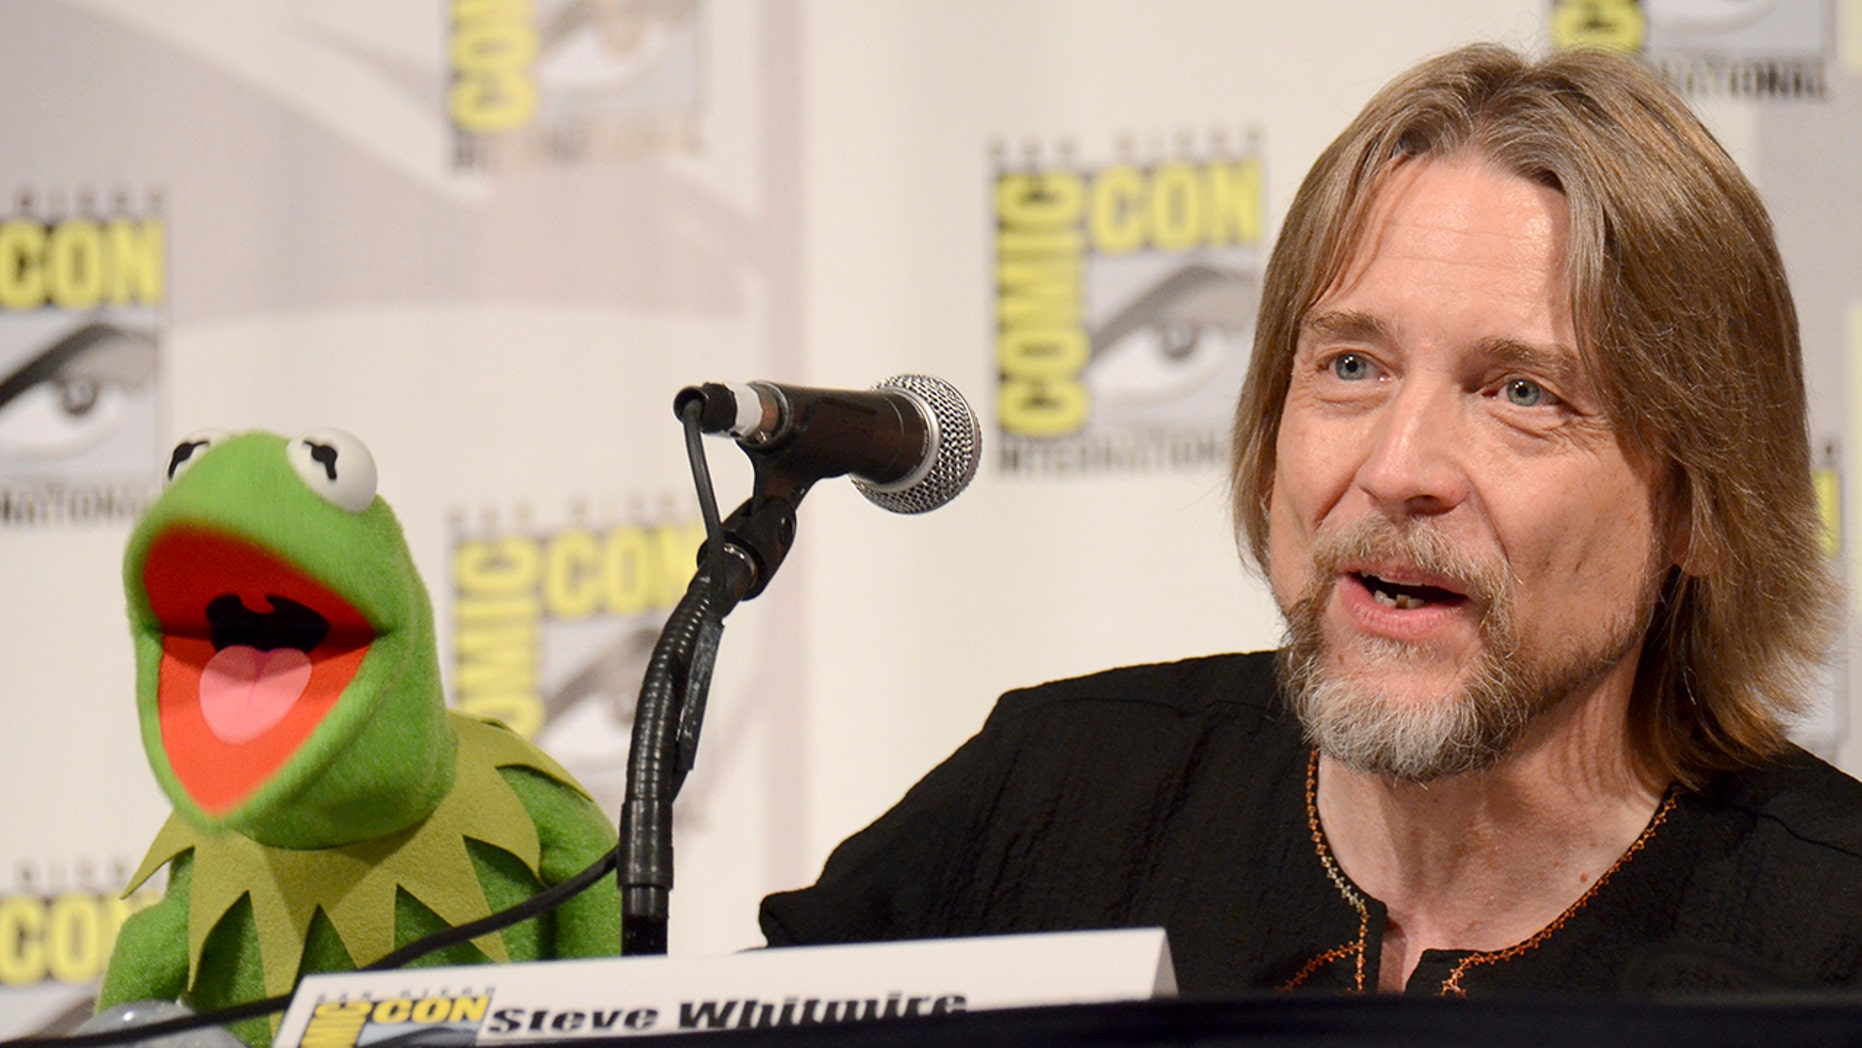 """In this July 11, 2015, file photo, Kermit the Frog, left, and puppeteer Steve Whitmire attend """"The Muppets"""" panel on day 3 of Comic-Con International in San Diego. ABC News and The Hollywood Reporter reported July 10, 2017, that Whitmire is no longer performing the character."""